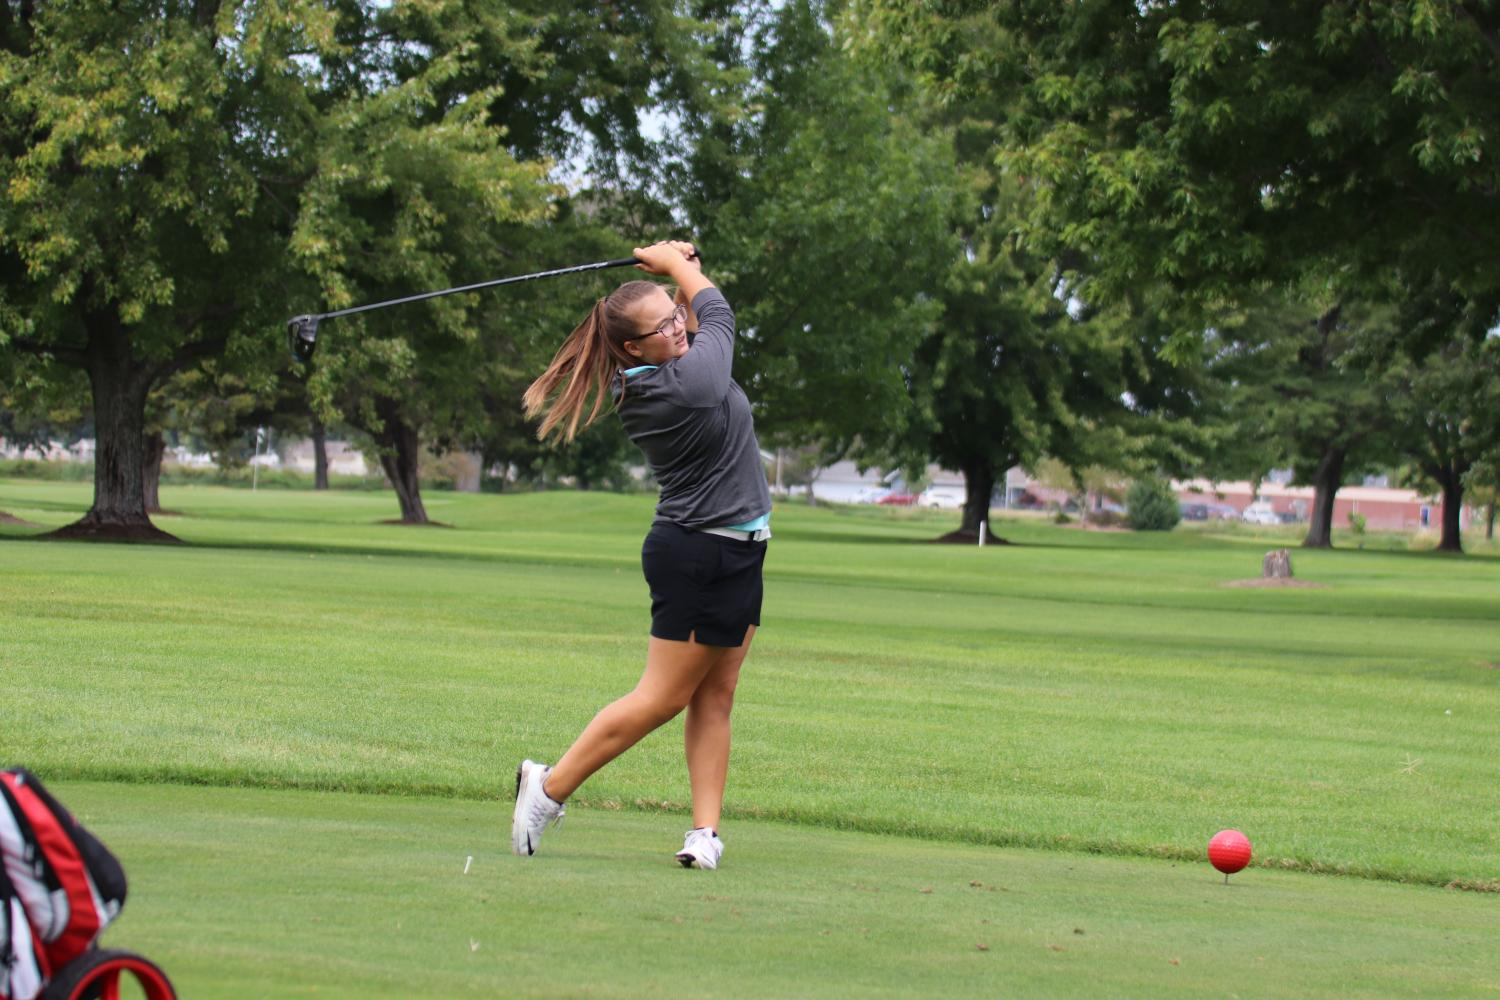 """Freshman Baylee Steele has been golfing competitively for around three years, but she began golfing in elementary school. """"I first picked up a club in second or third grade, but I didn't realize how much I liked it until sixth grade,"""" she said."""